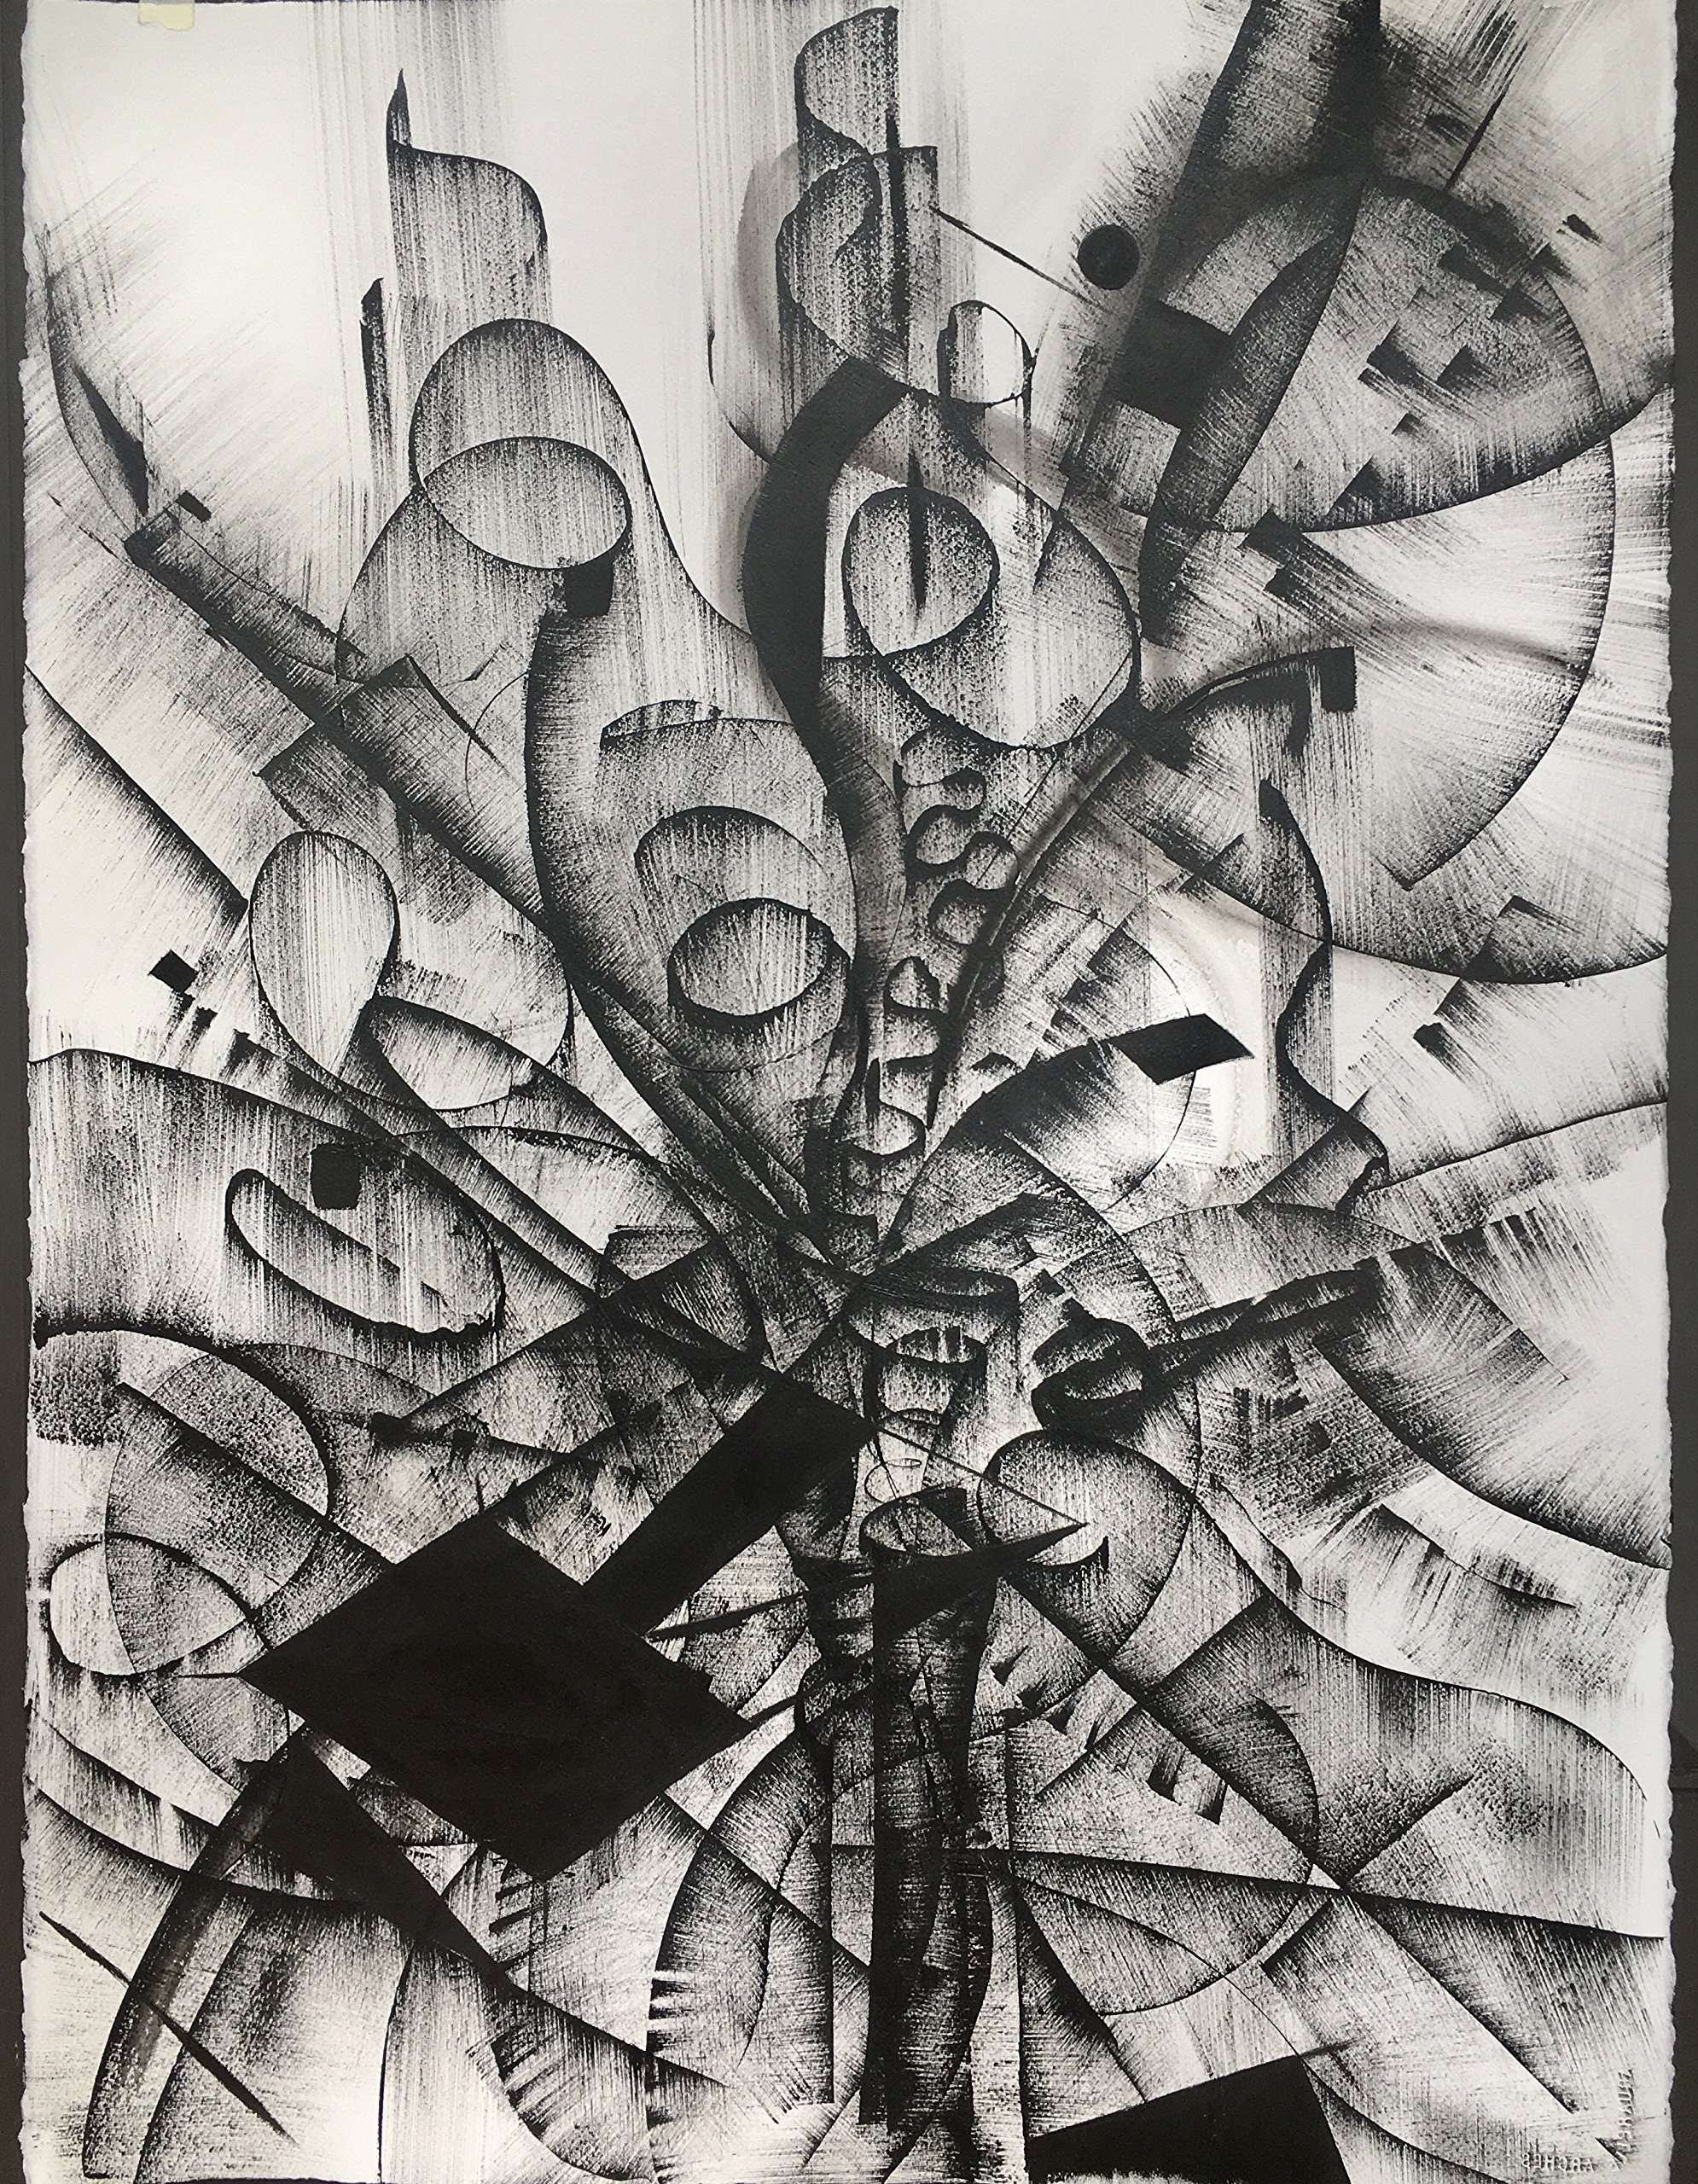 Black & White Abstract Drawing #4 by